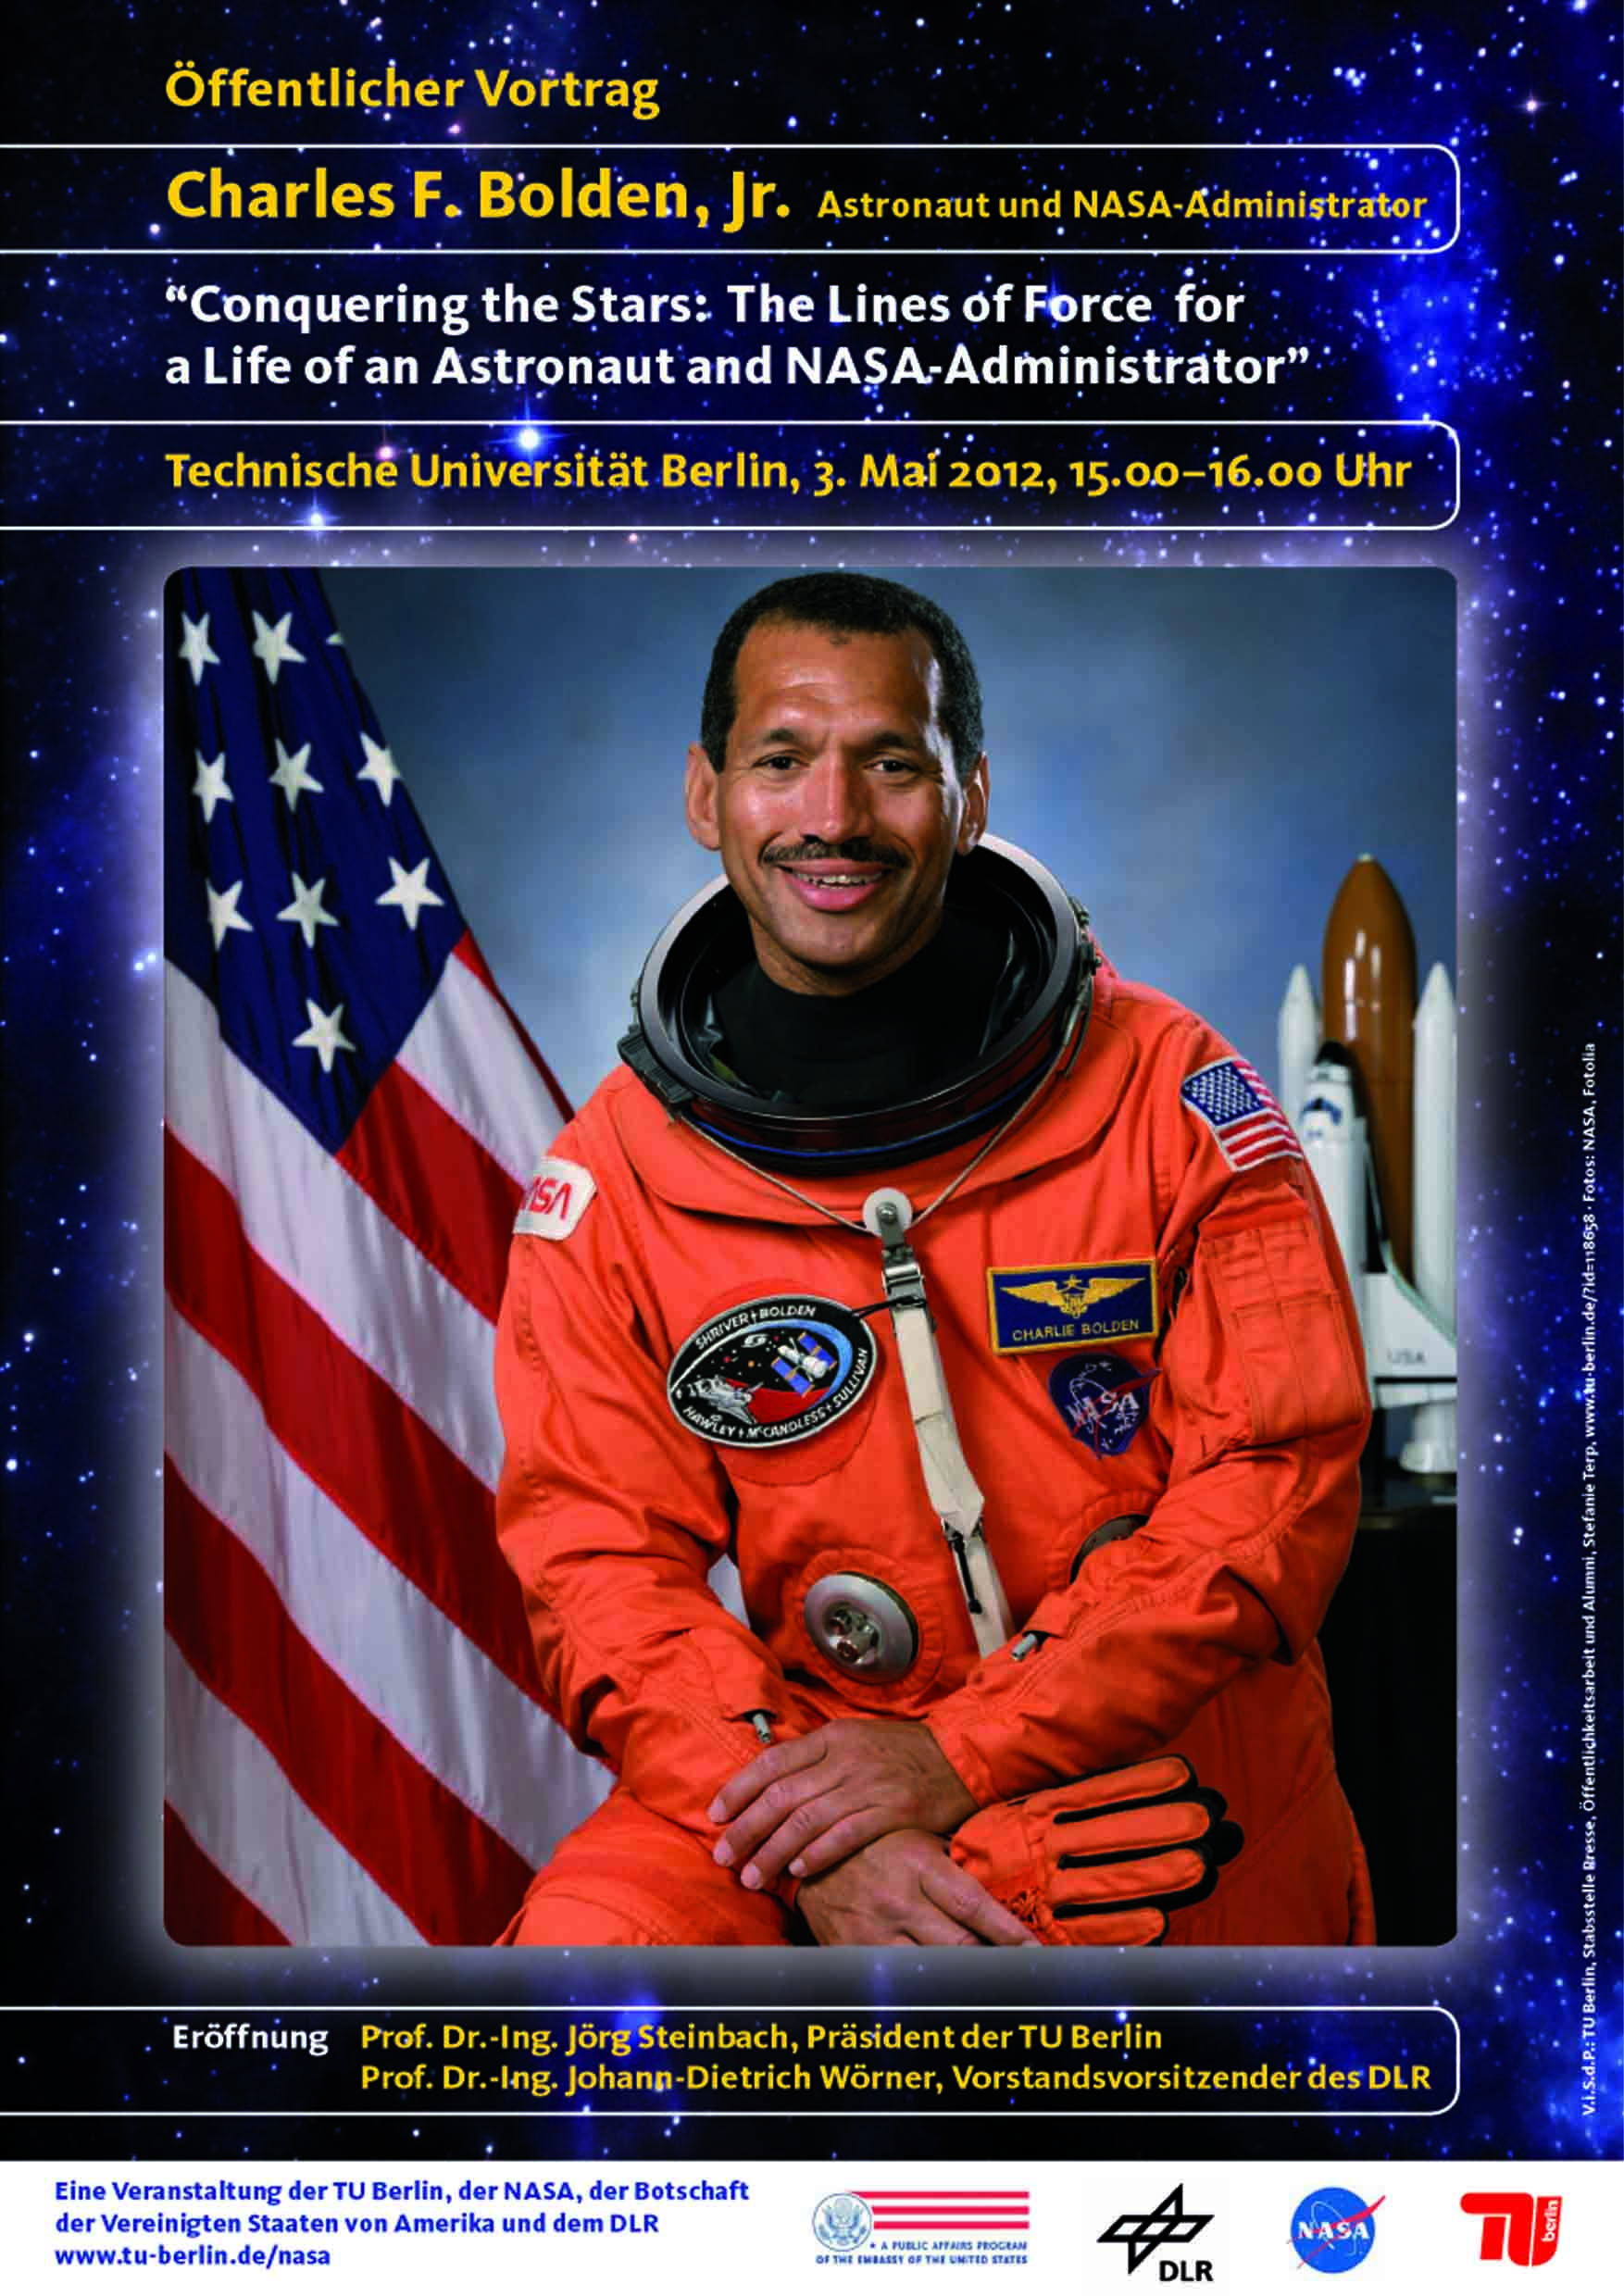 Charles Bolden Astronaut (page 3) - Pics about space